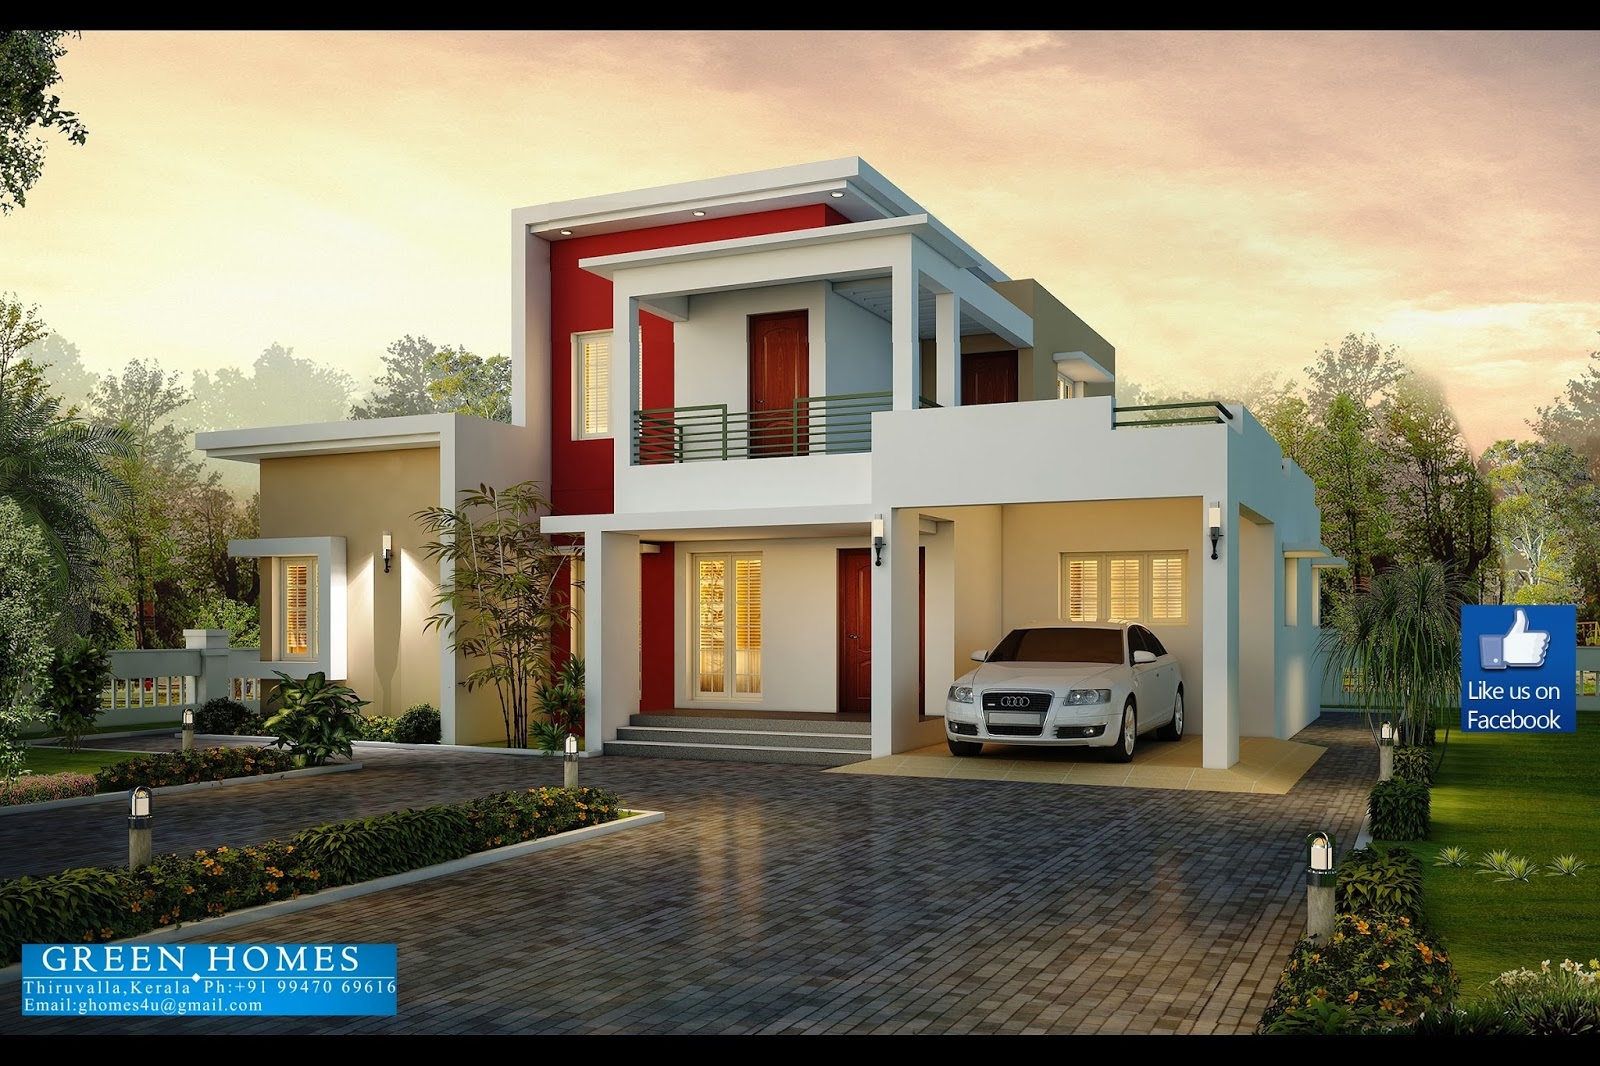 Green homes awesome 3 bedroom modern house design House three bedroom